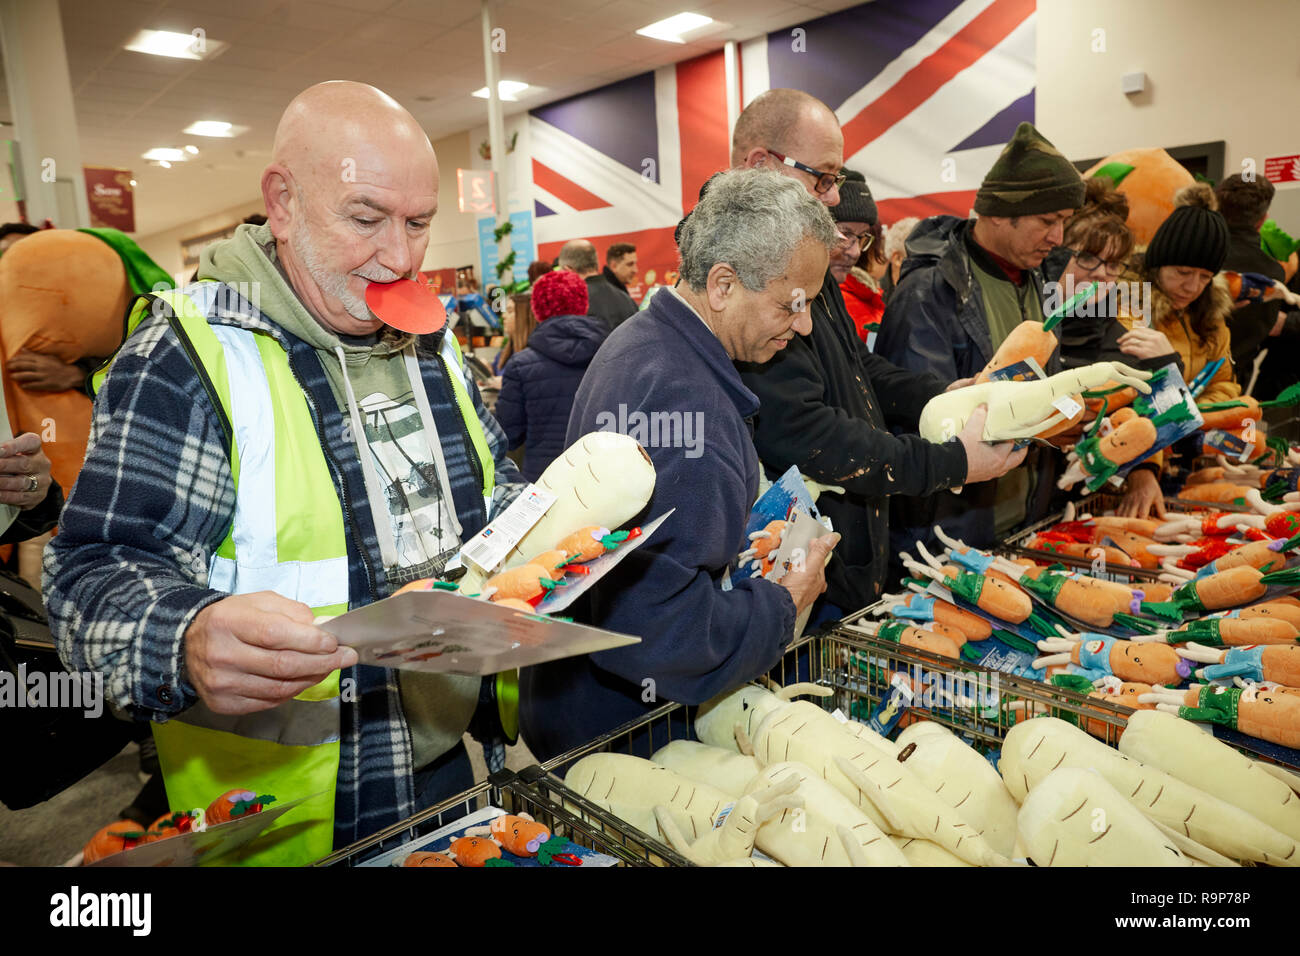 ALDI customers queueing for the soft toy Kevin the Carrot - Stock Image